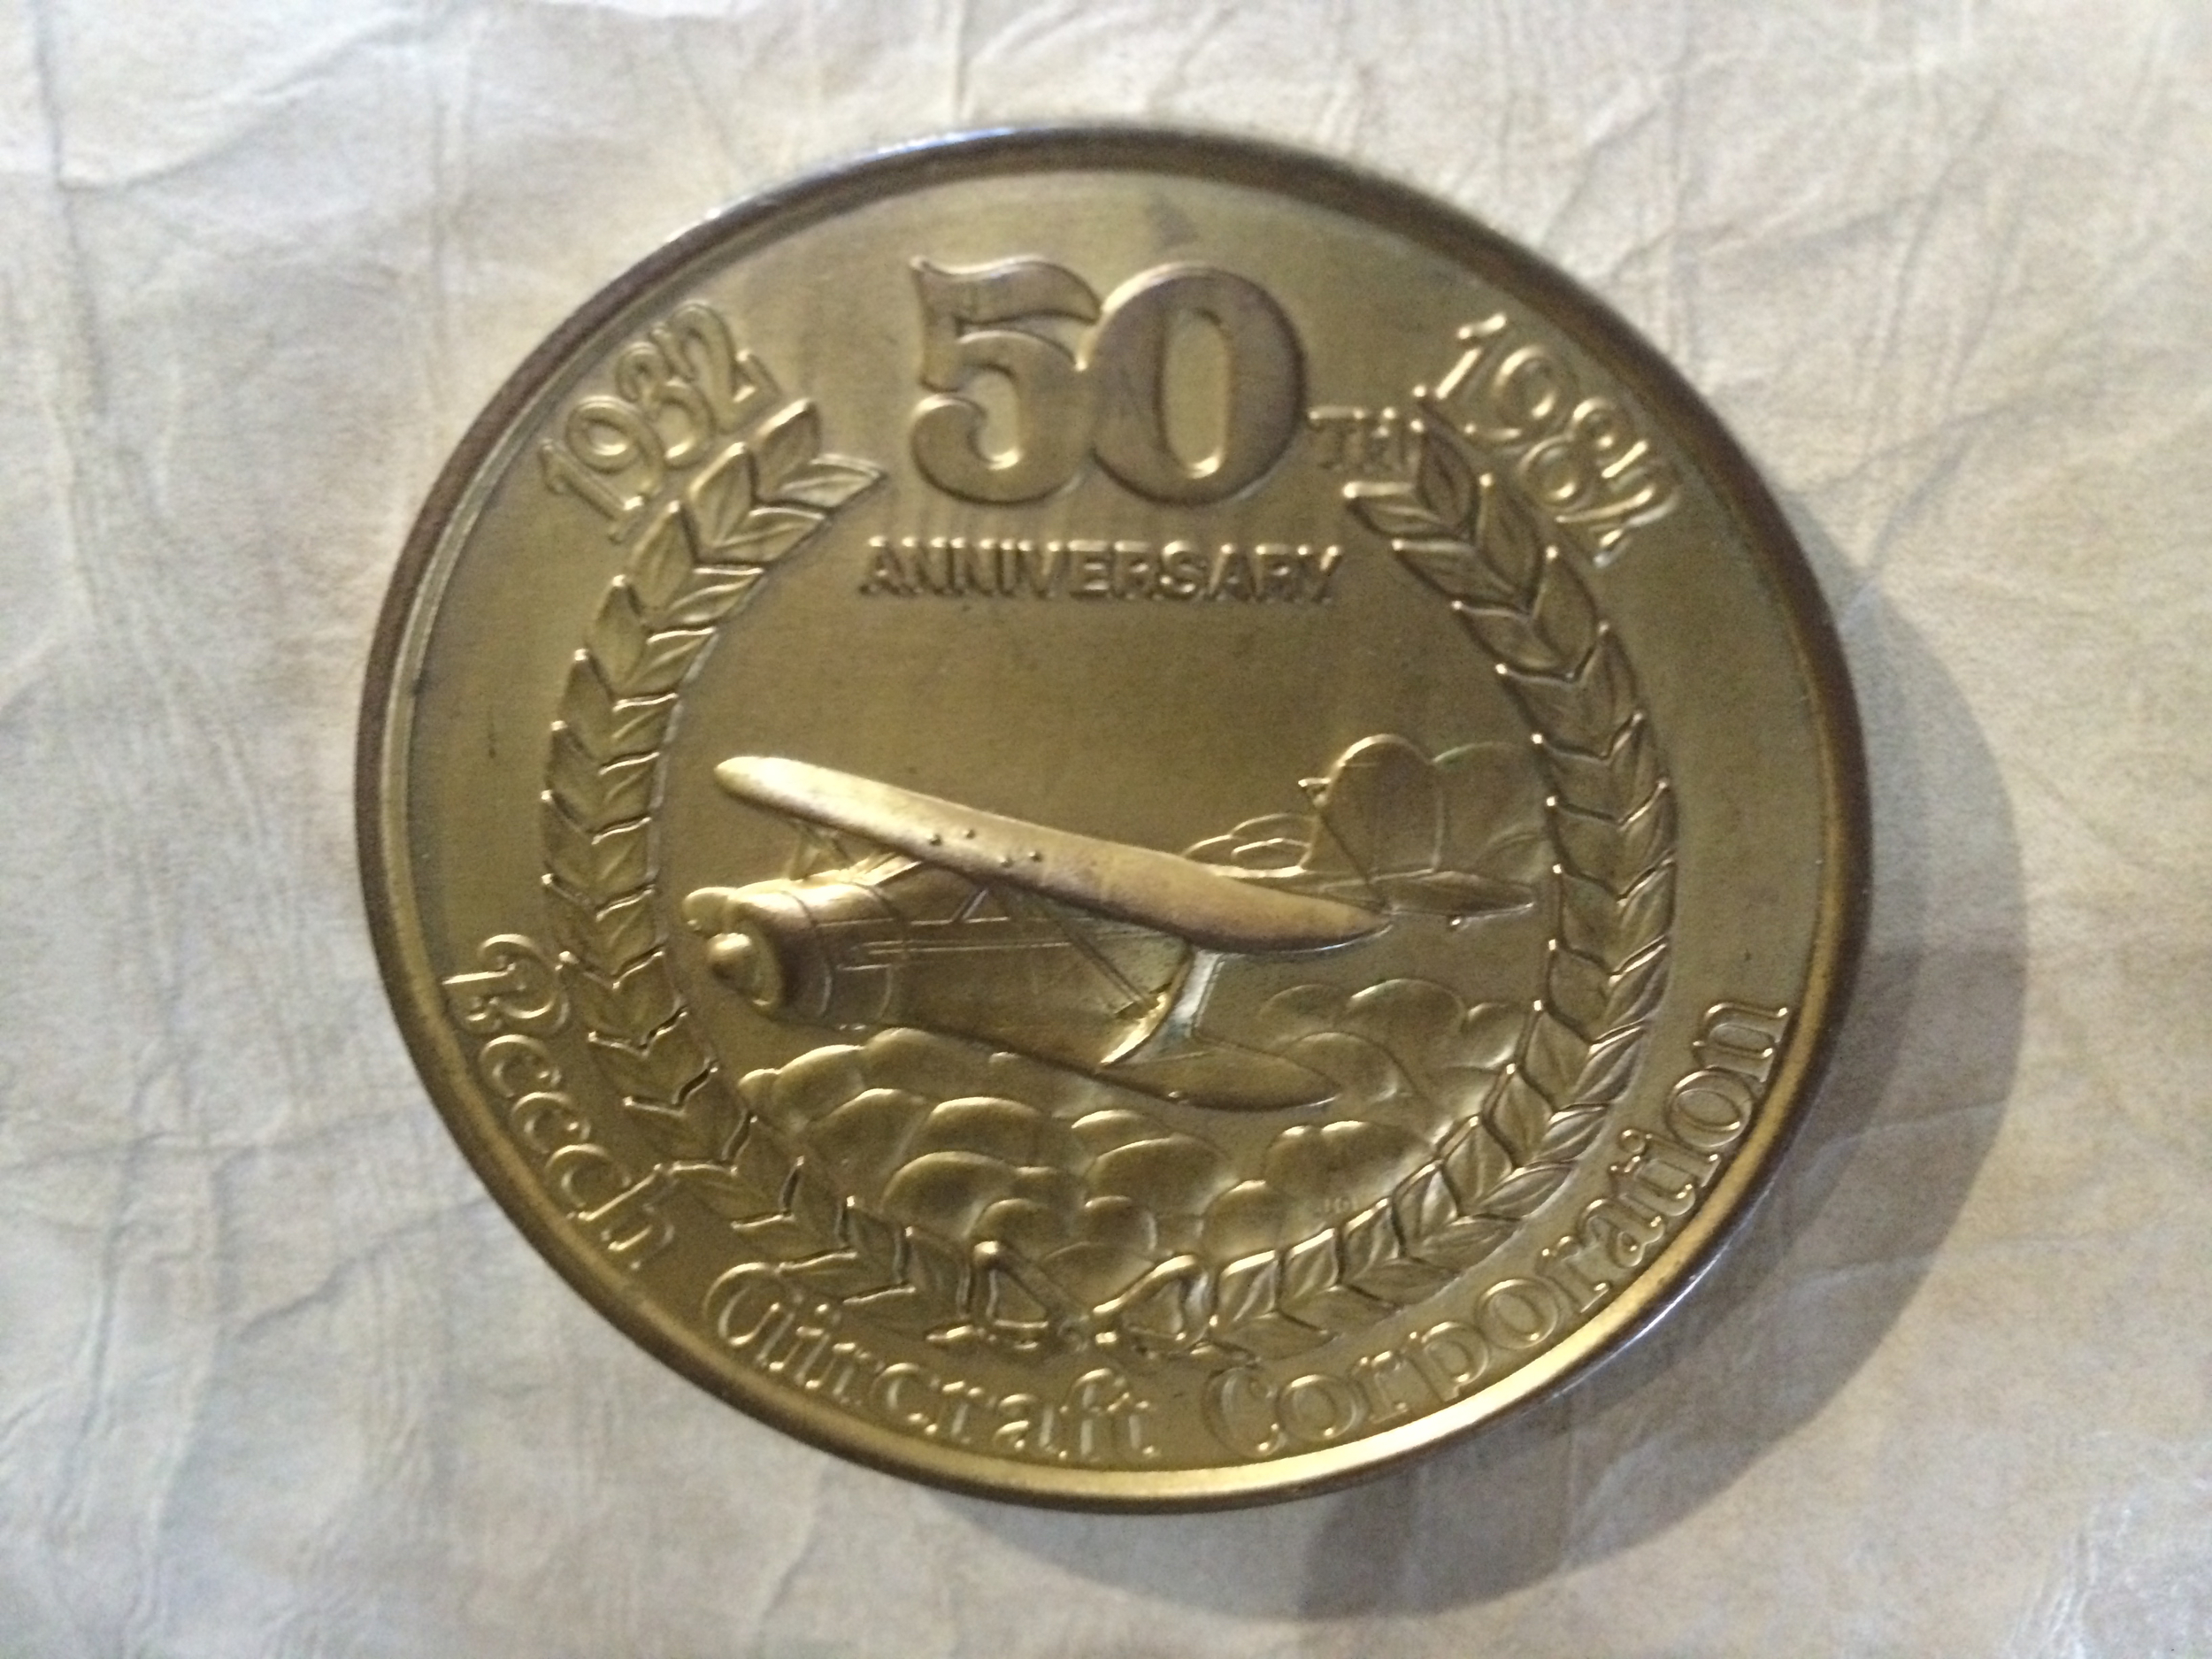 Beechcraft airplanes built in 1982 had this medal attached.